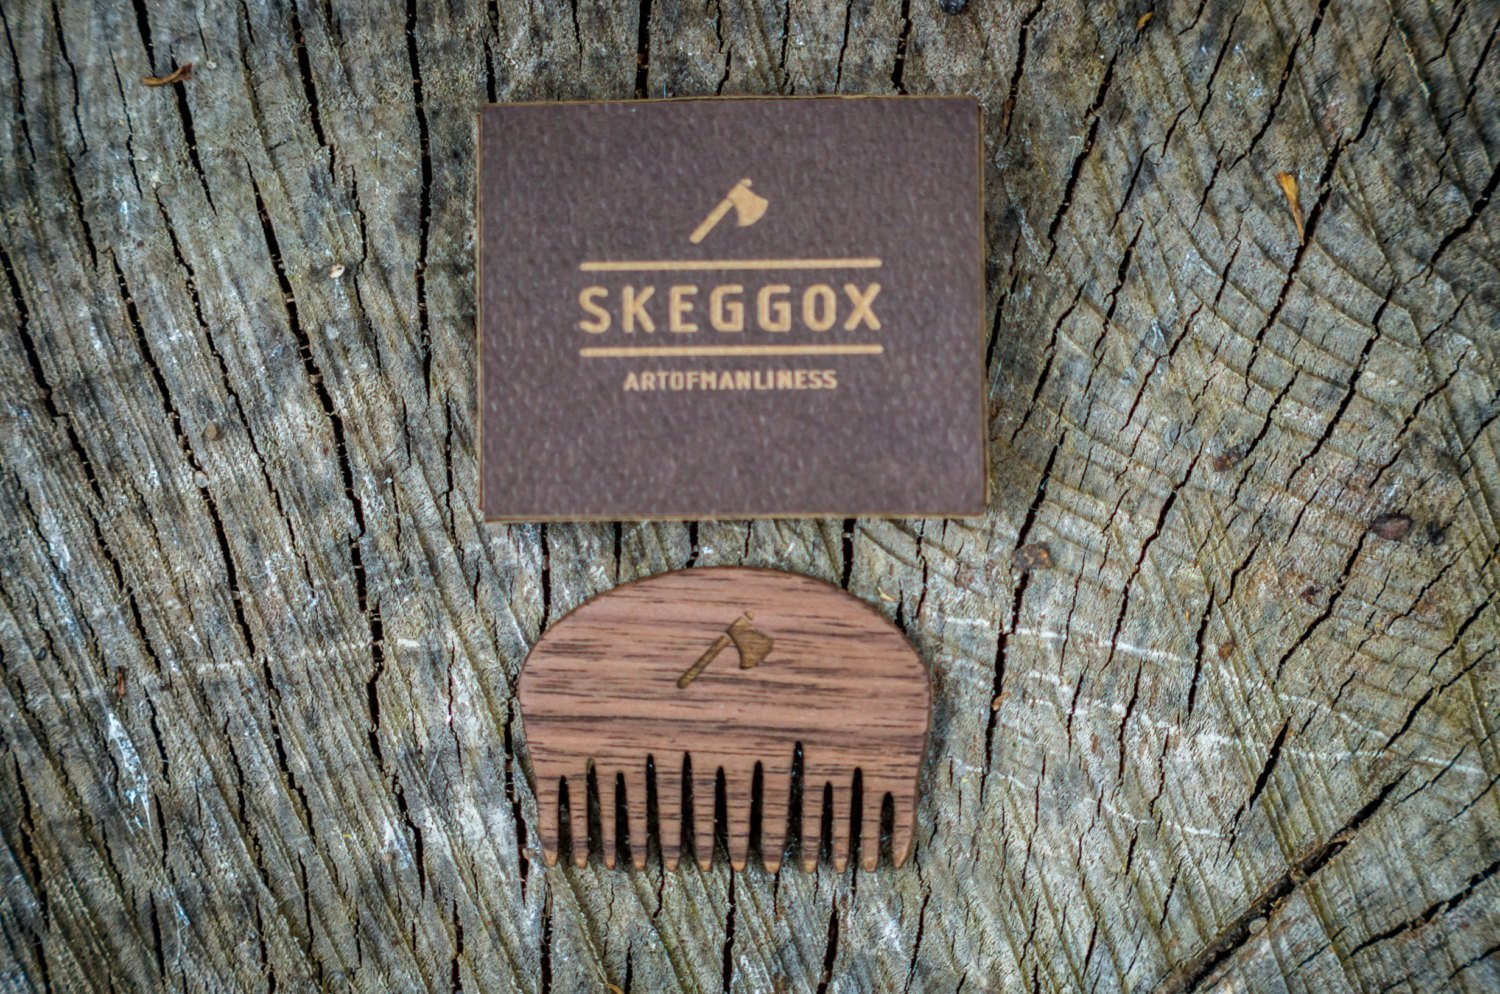 Handmade Small Beard and Mustache Comb by SKEGGOX - Pocket Comb - Mini - Perfect for Mustache - Finished with Organic Beeswax by SKEGGOX